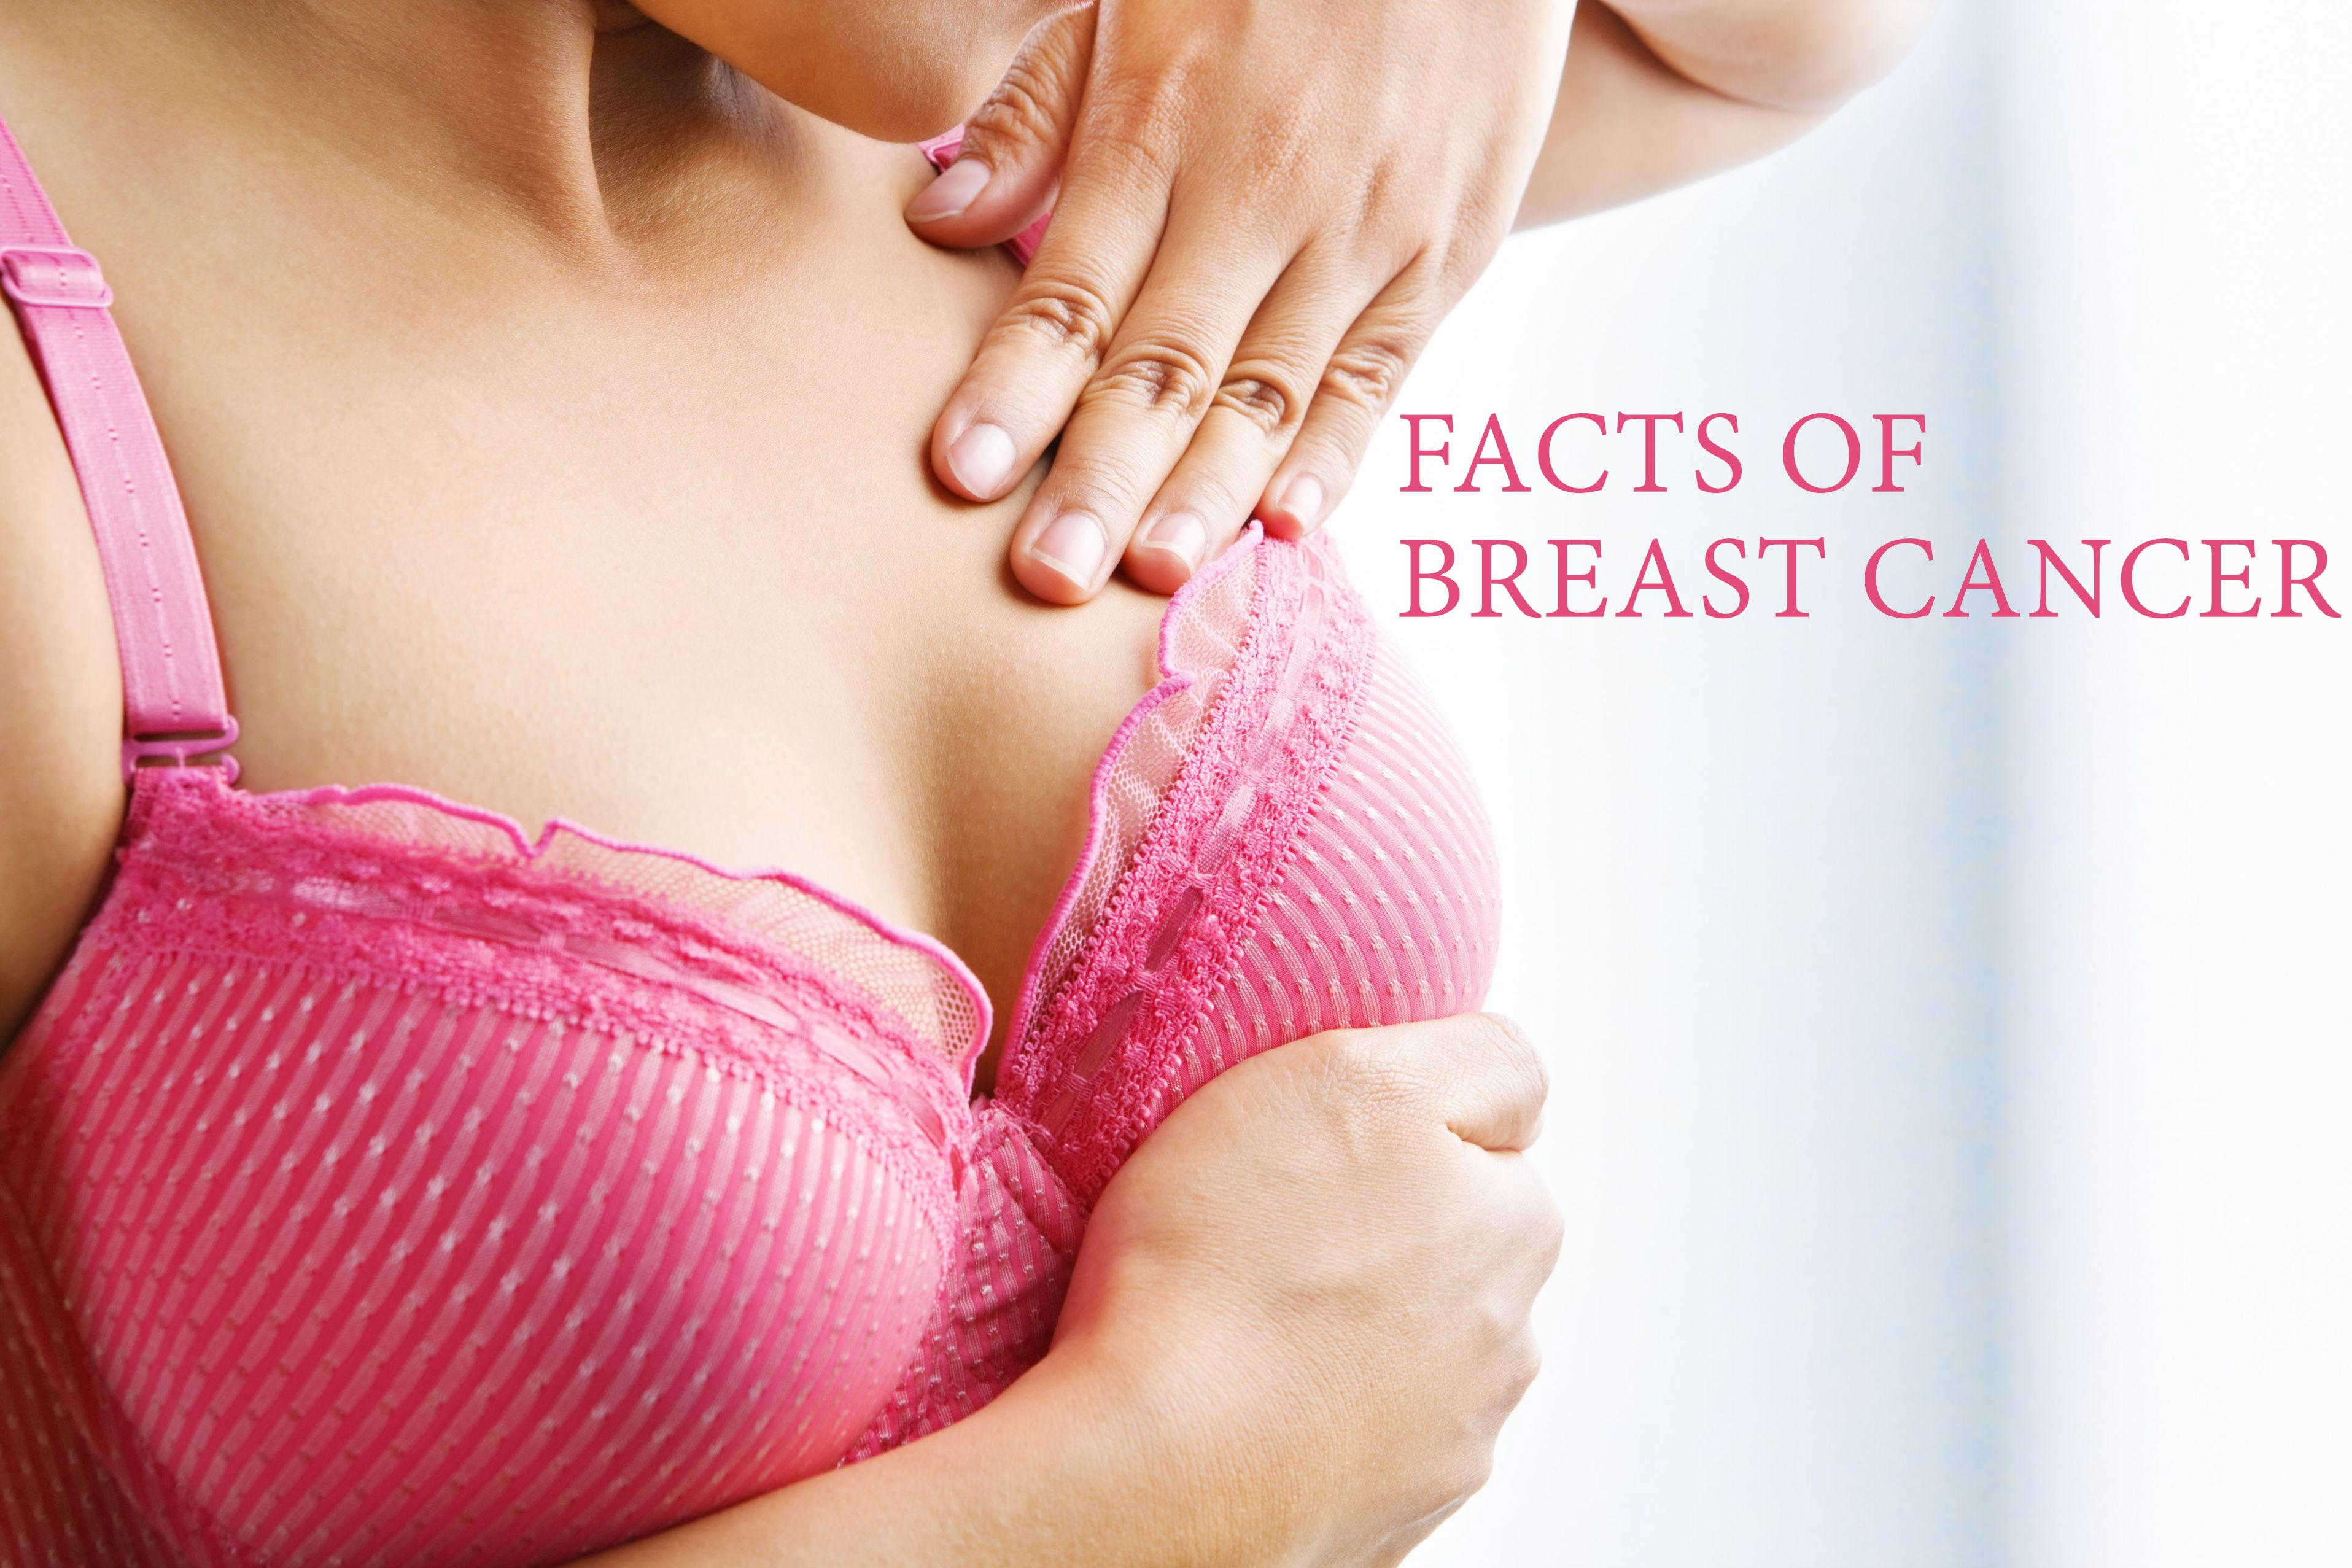 breast cancer in women Fewer and fewer women die from breast cancer in recent years but, surprisingly, the decline is just as large in the age groups that are not screened the decline is therefore due to better.